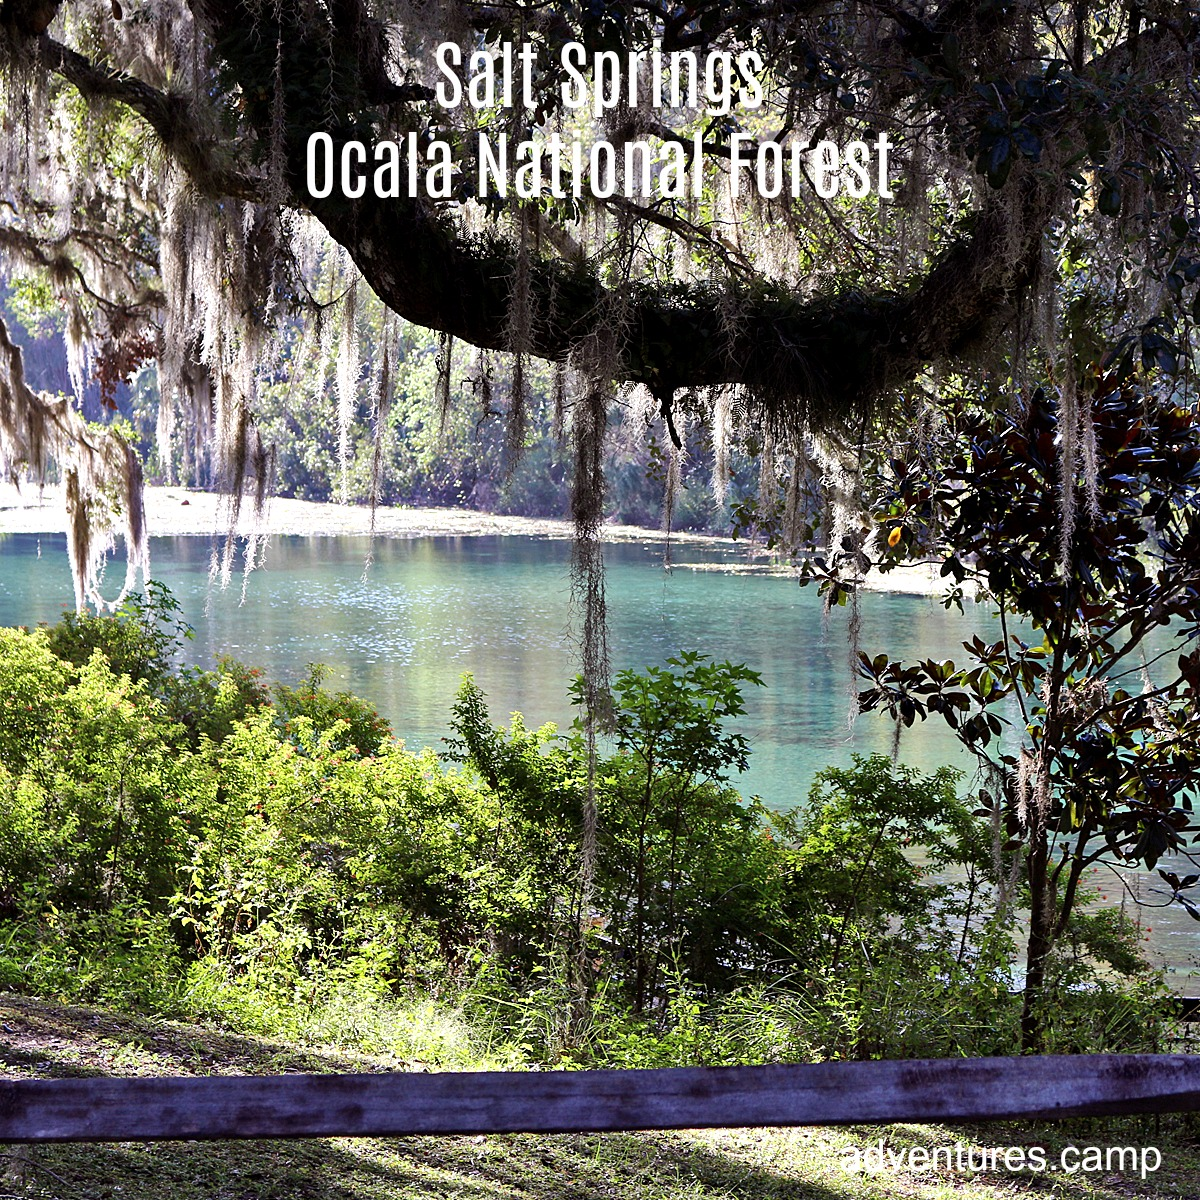 Salt Springs Ocala National Forest